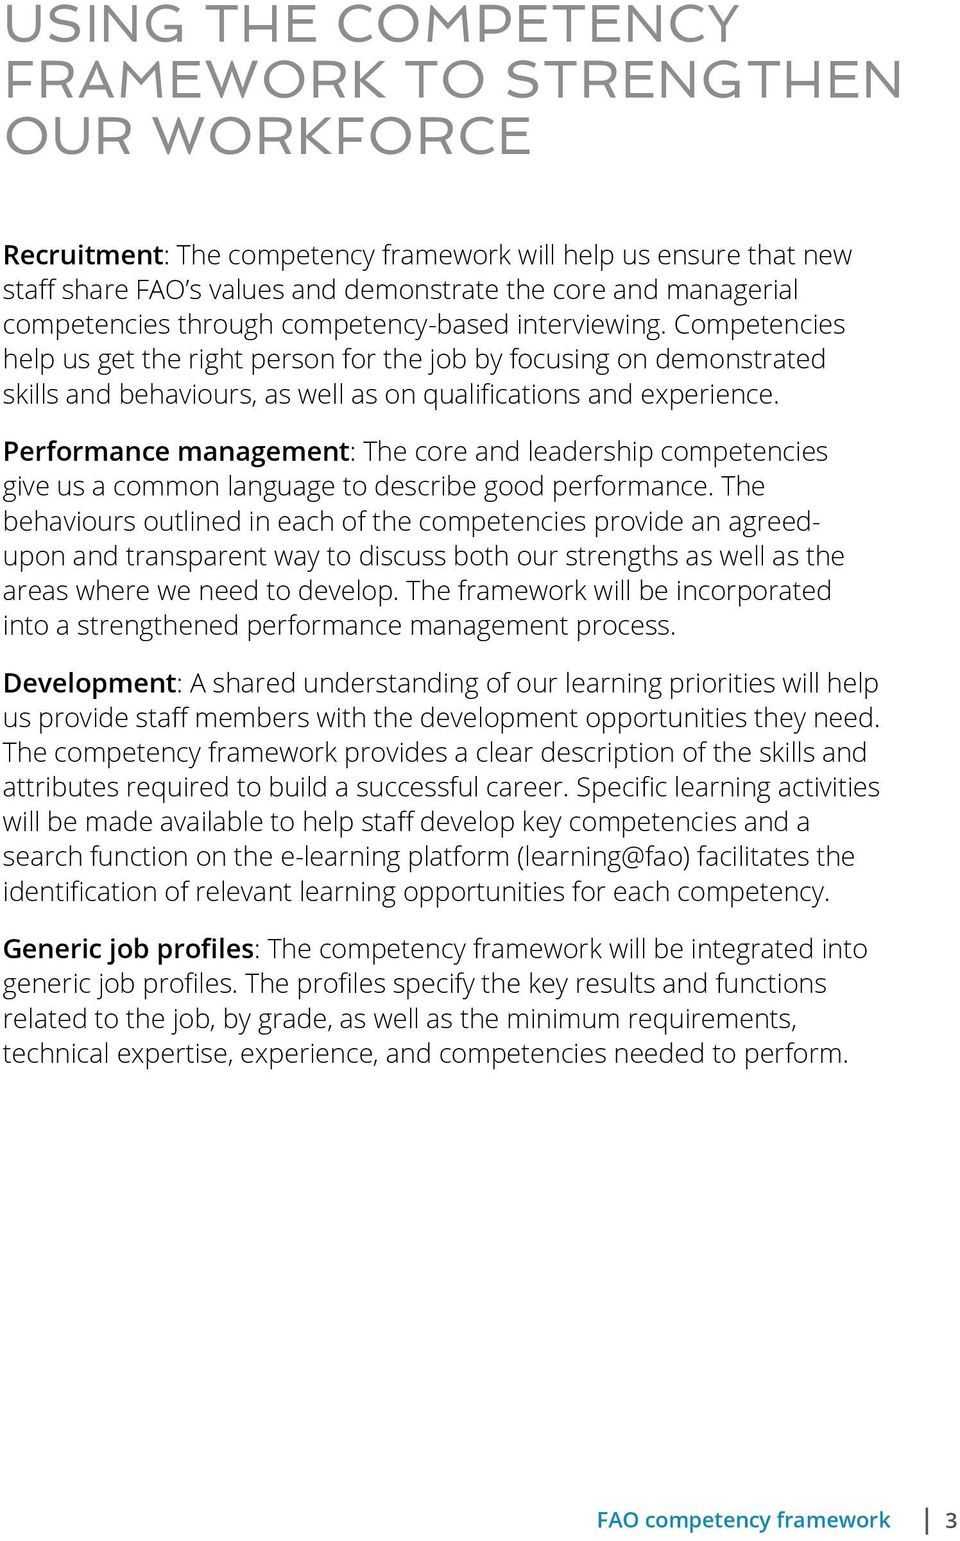 Competencies help us get the right person for the job by focusing on demonstrated skills and behaviours, as well as on qualifications and experience.